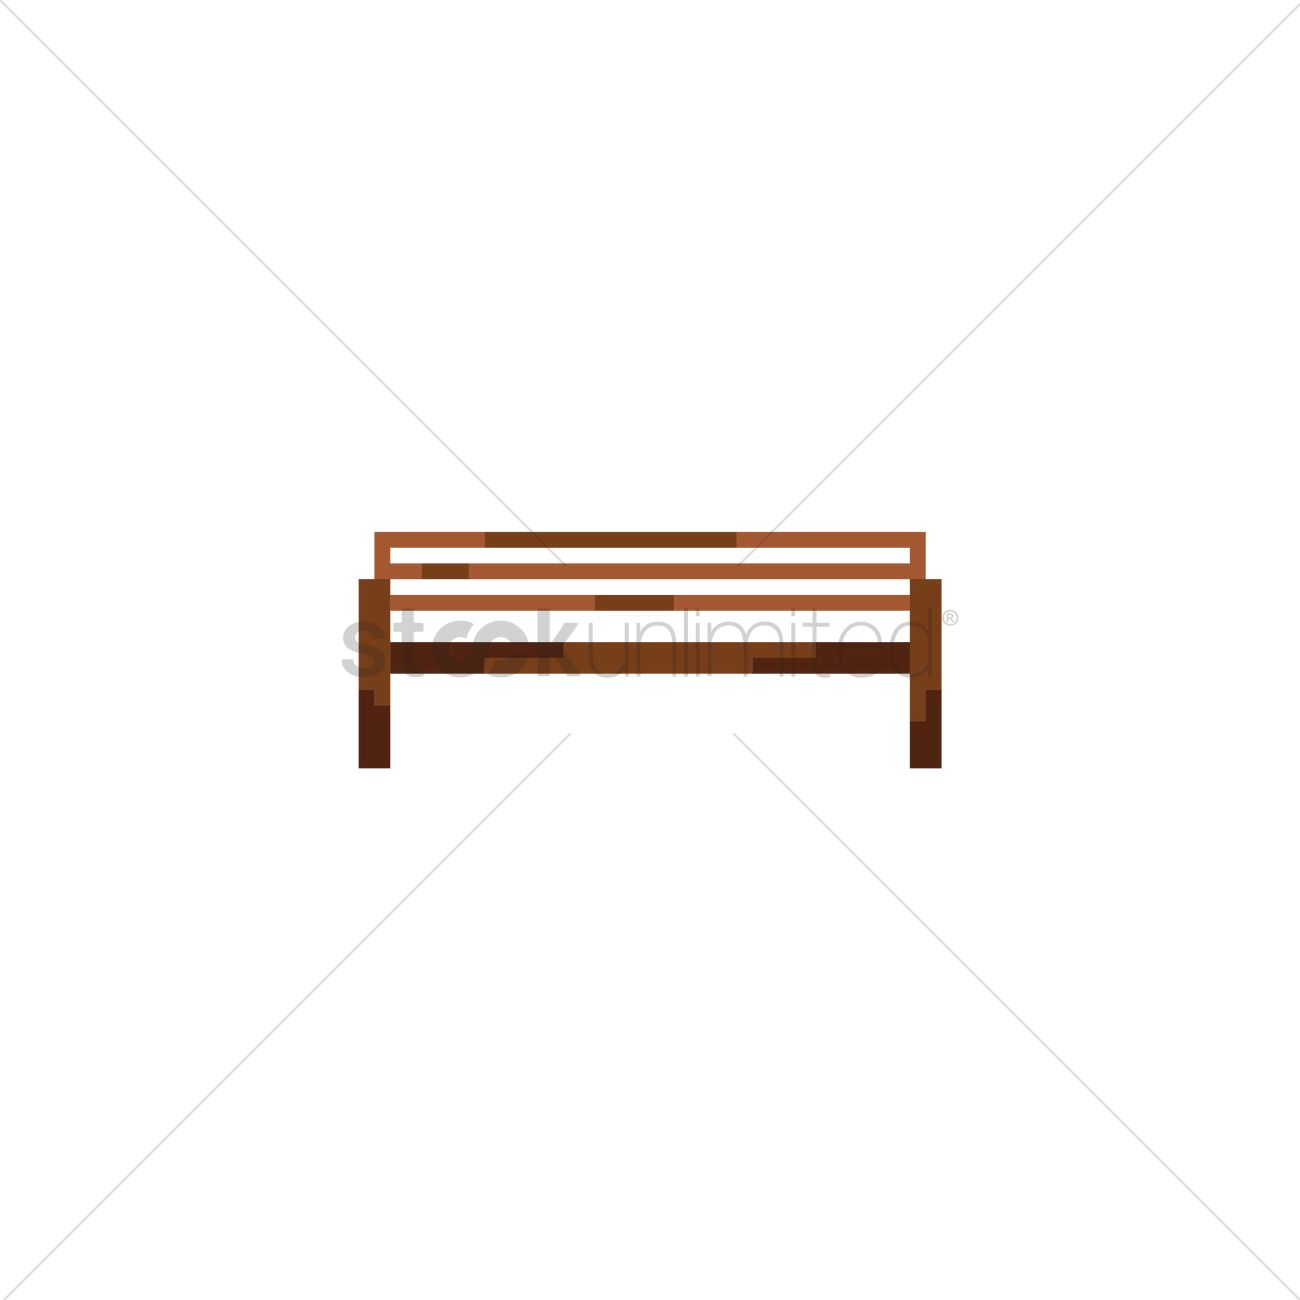 Stupendous Pixel Art Wooden Bench Vector Image 1958368 Stockunlimited Pabps2019 Chair Design Images Pabps2019Com